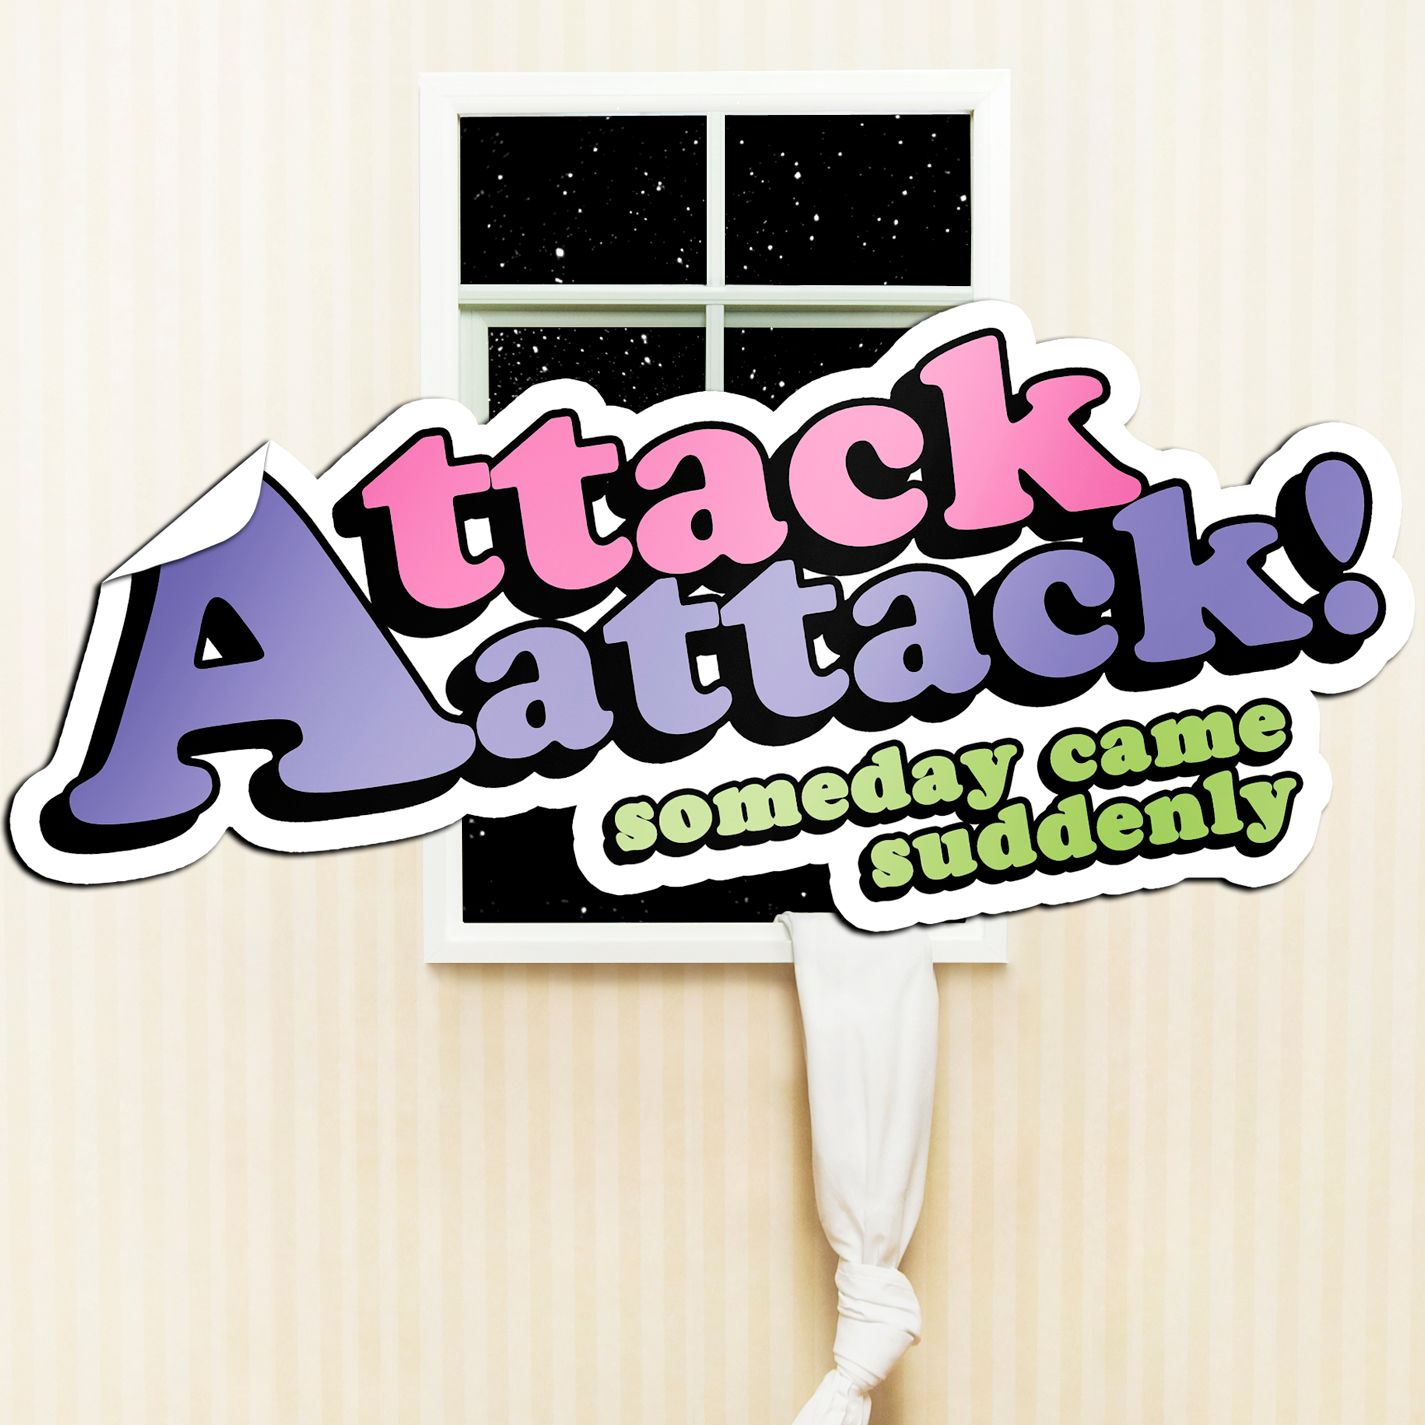 Attack Attack! (us)  Someday Came Suddenly  Positive